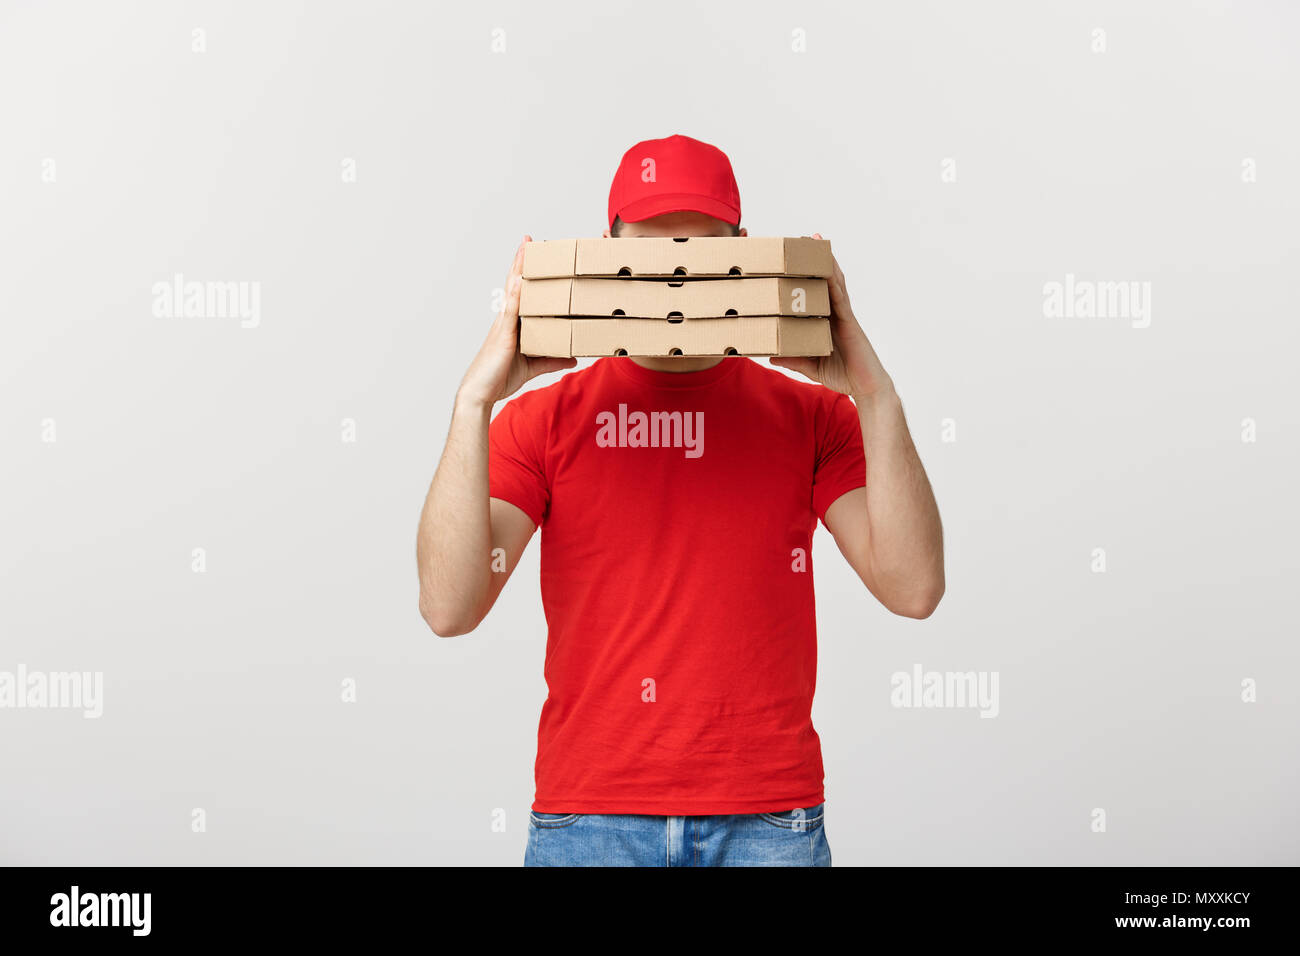 A Deliveryman hidden behind a large stack of pizza boxes he is carrying. Isolated over grey background. - Stock Image